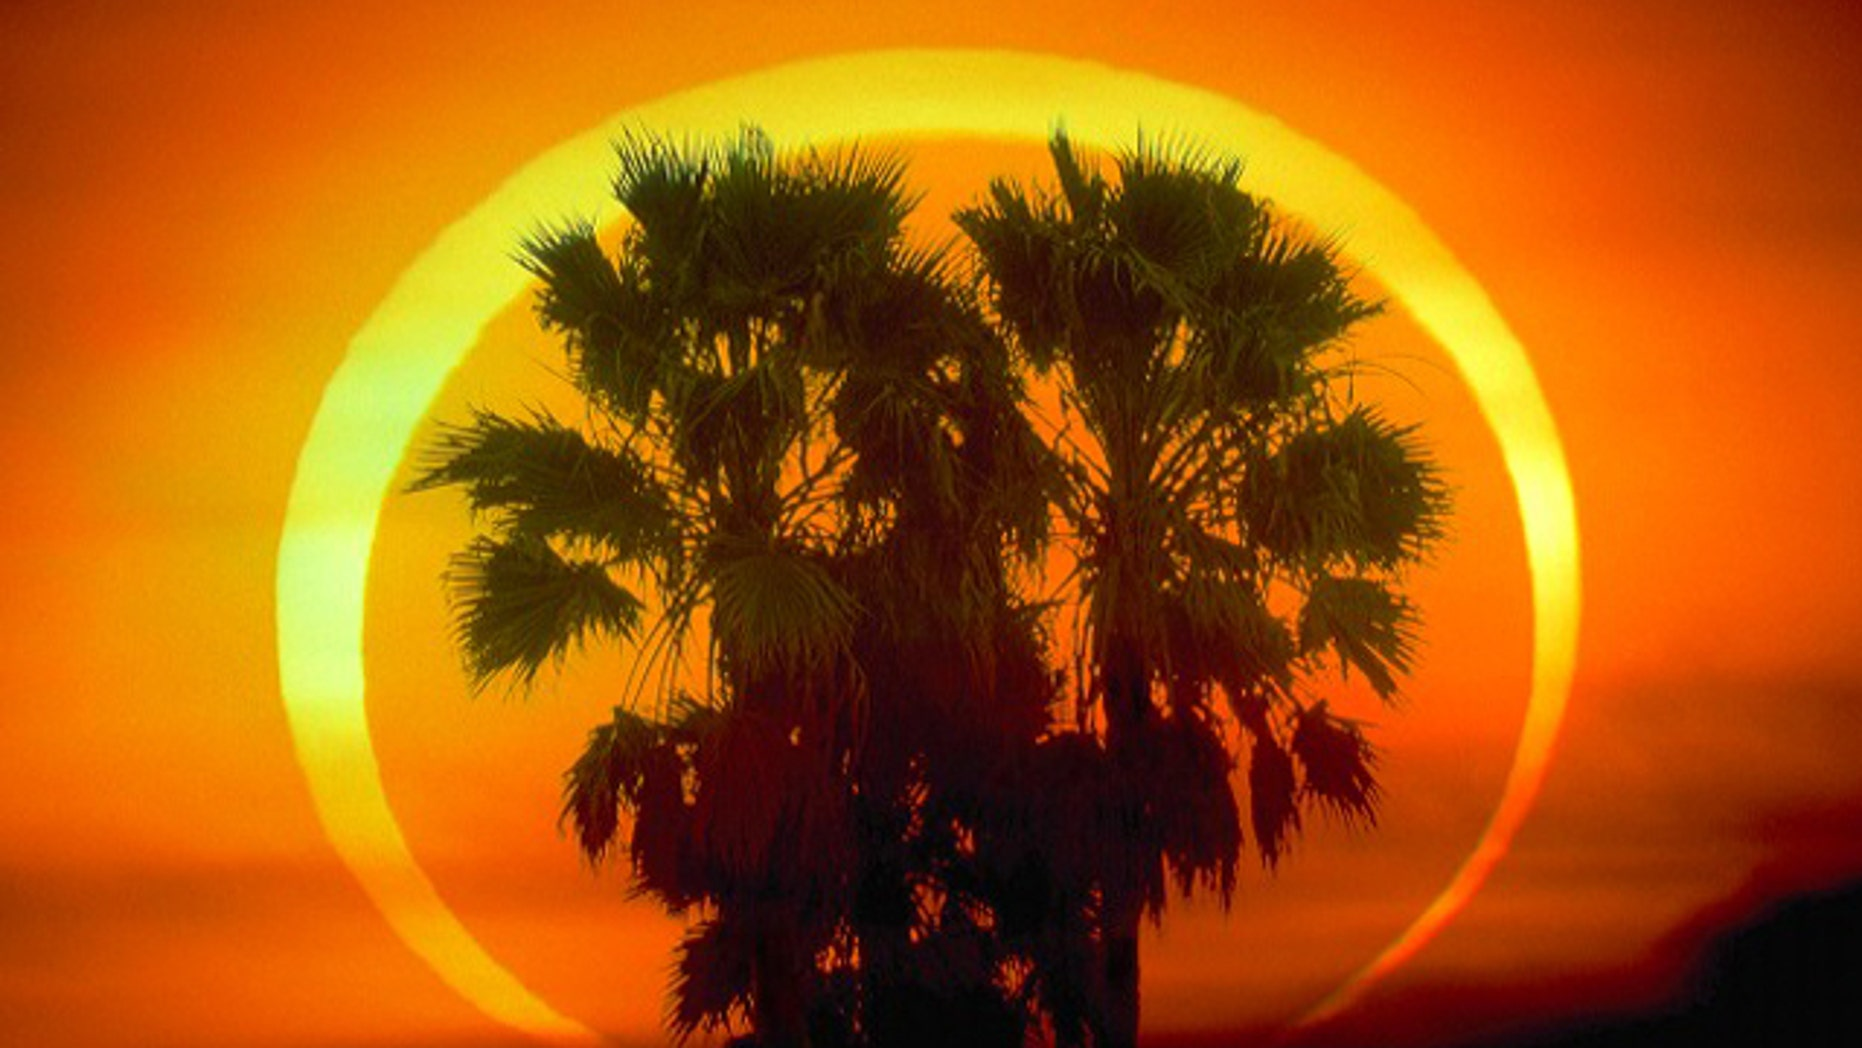 A spectacular annular eclipse photographed behind palm trees in 1992. On Friday, India launched a floatila of rockets to see how today's eclipse affected the Earth's atmosphere.